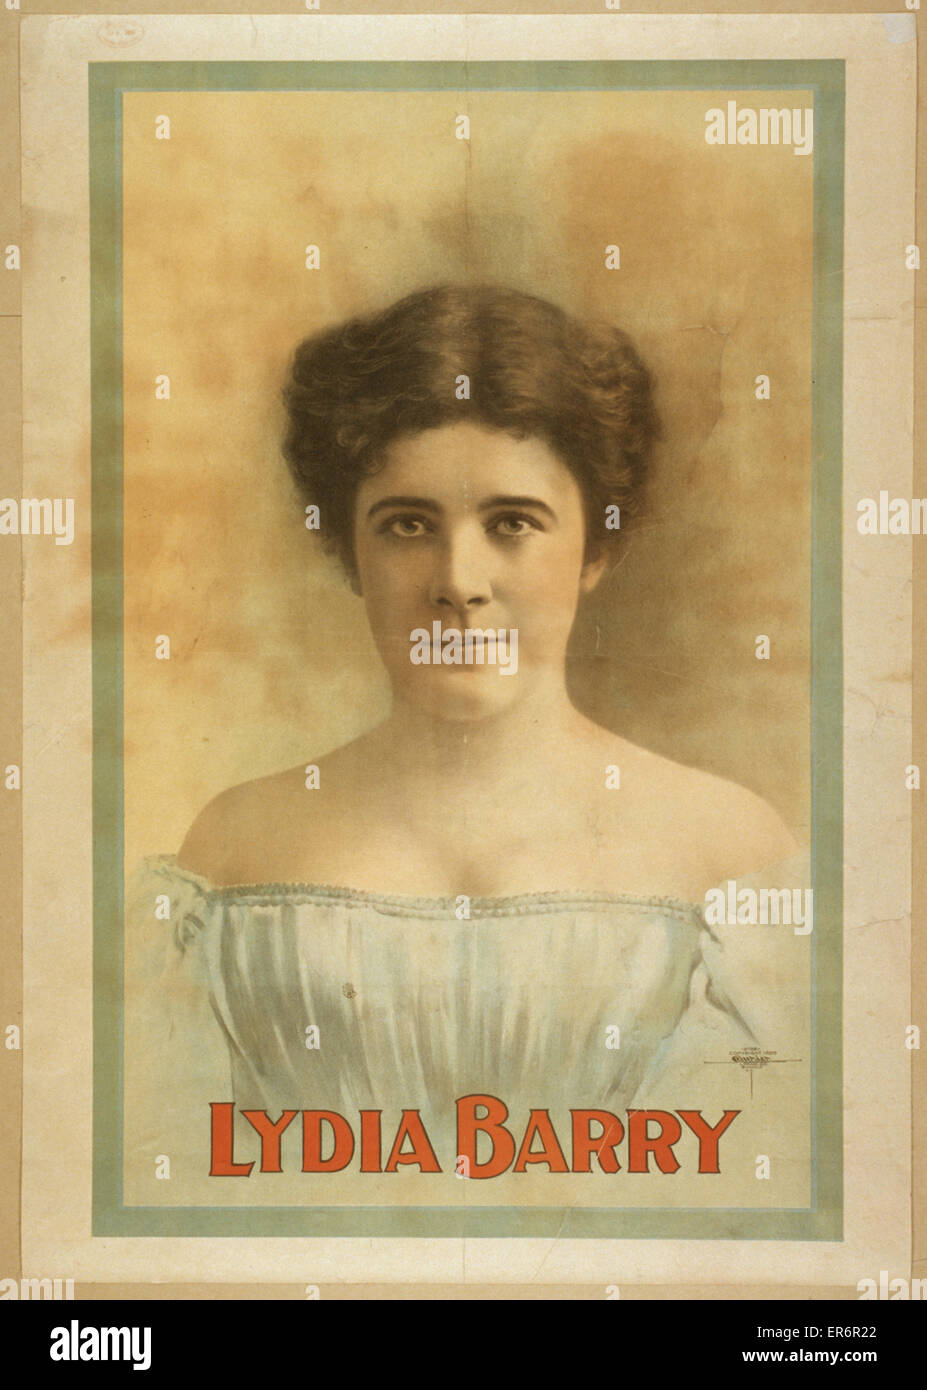 Lydia Barry. Date c1899. - Stock Image